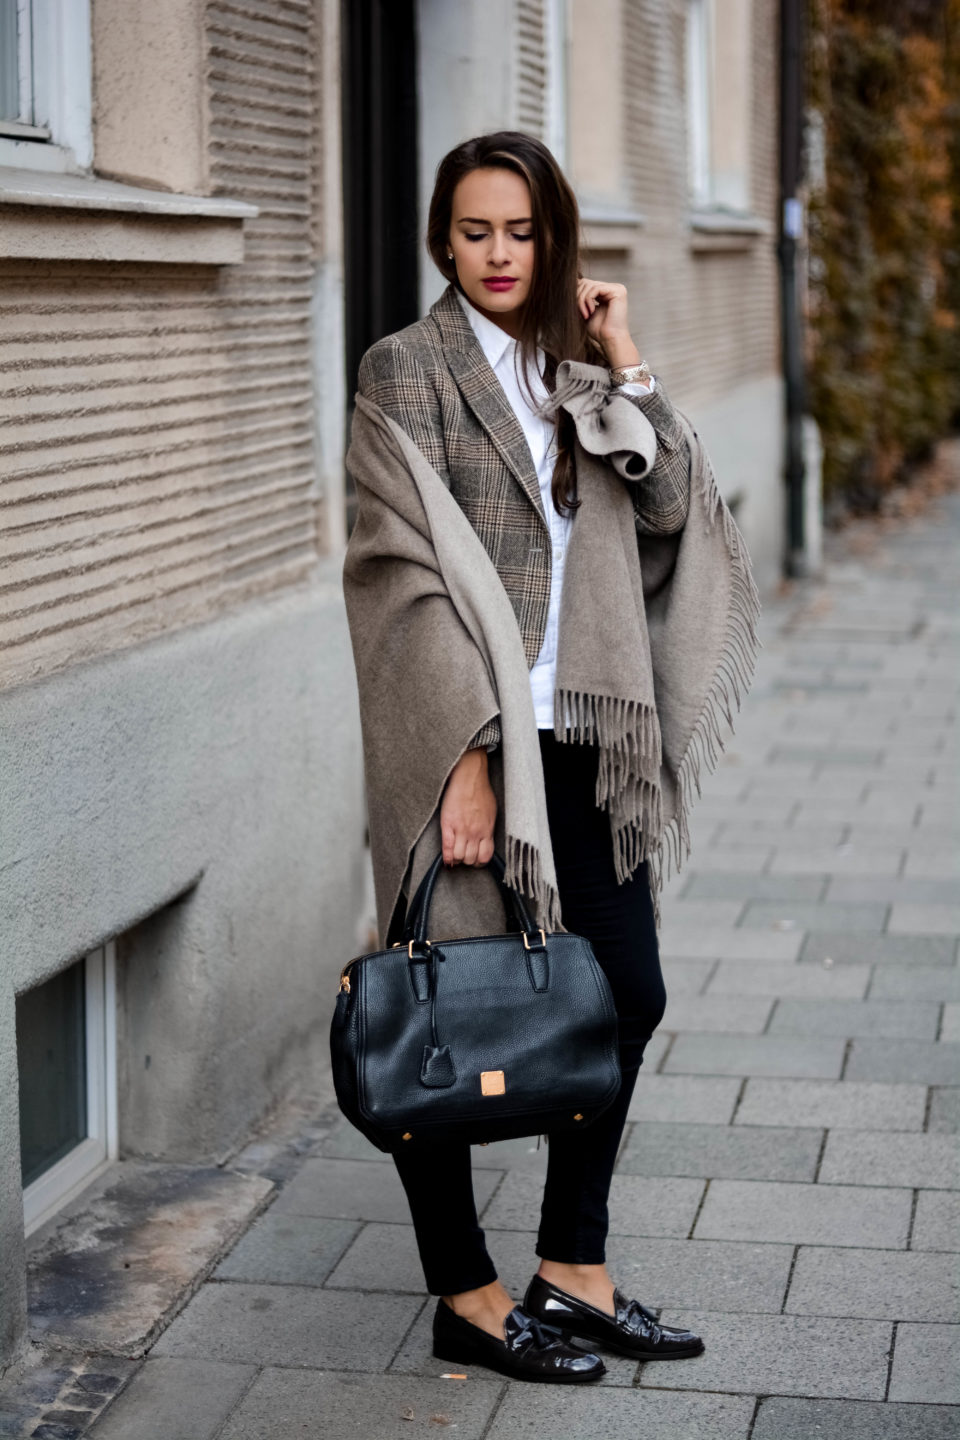 olivia julietta mcm bag german fashion blog gant poncho gant shoes footwear